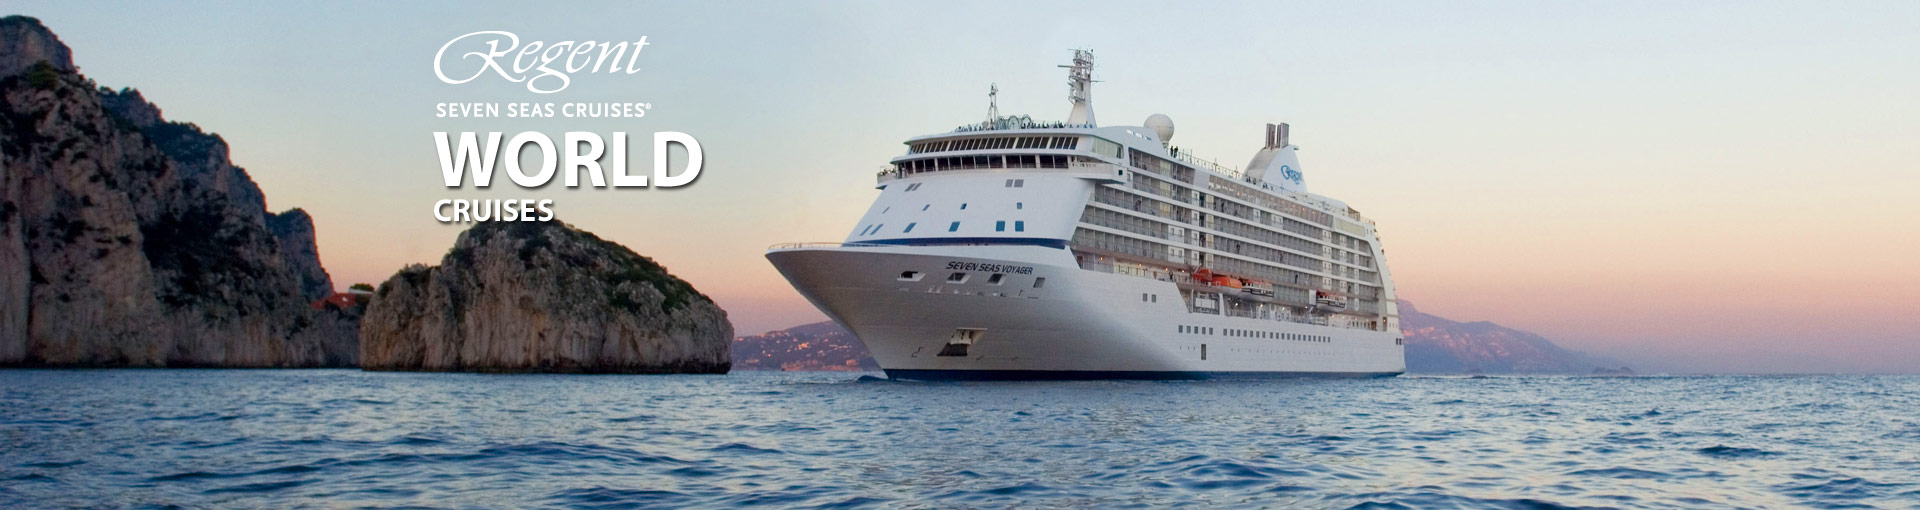 Regent Seven Seas Cruises World Cruises